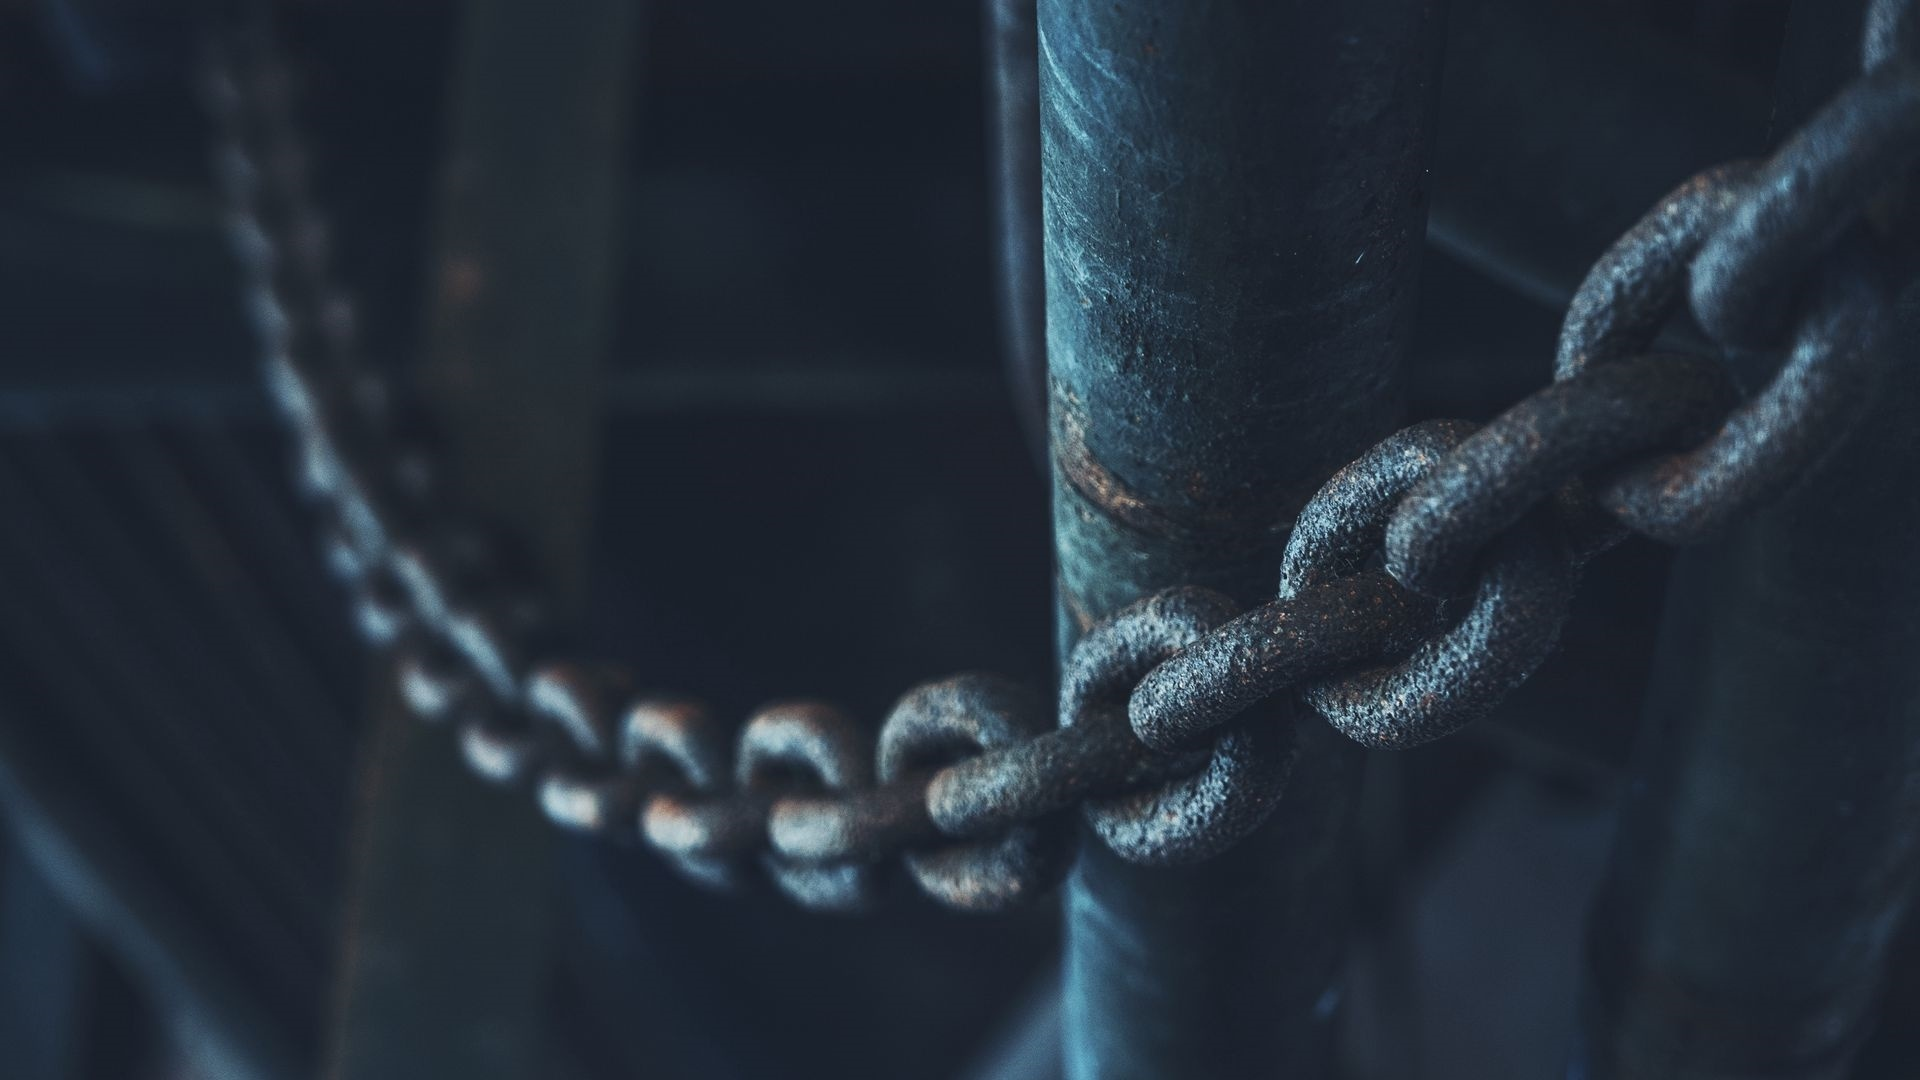 Chain wallpaper for desktop